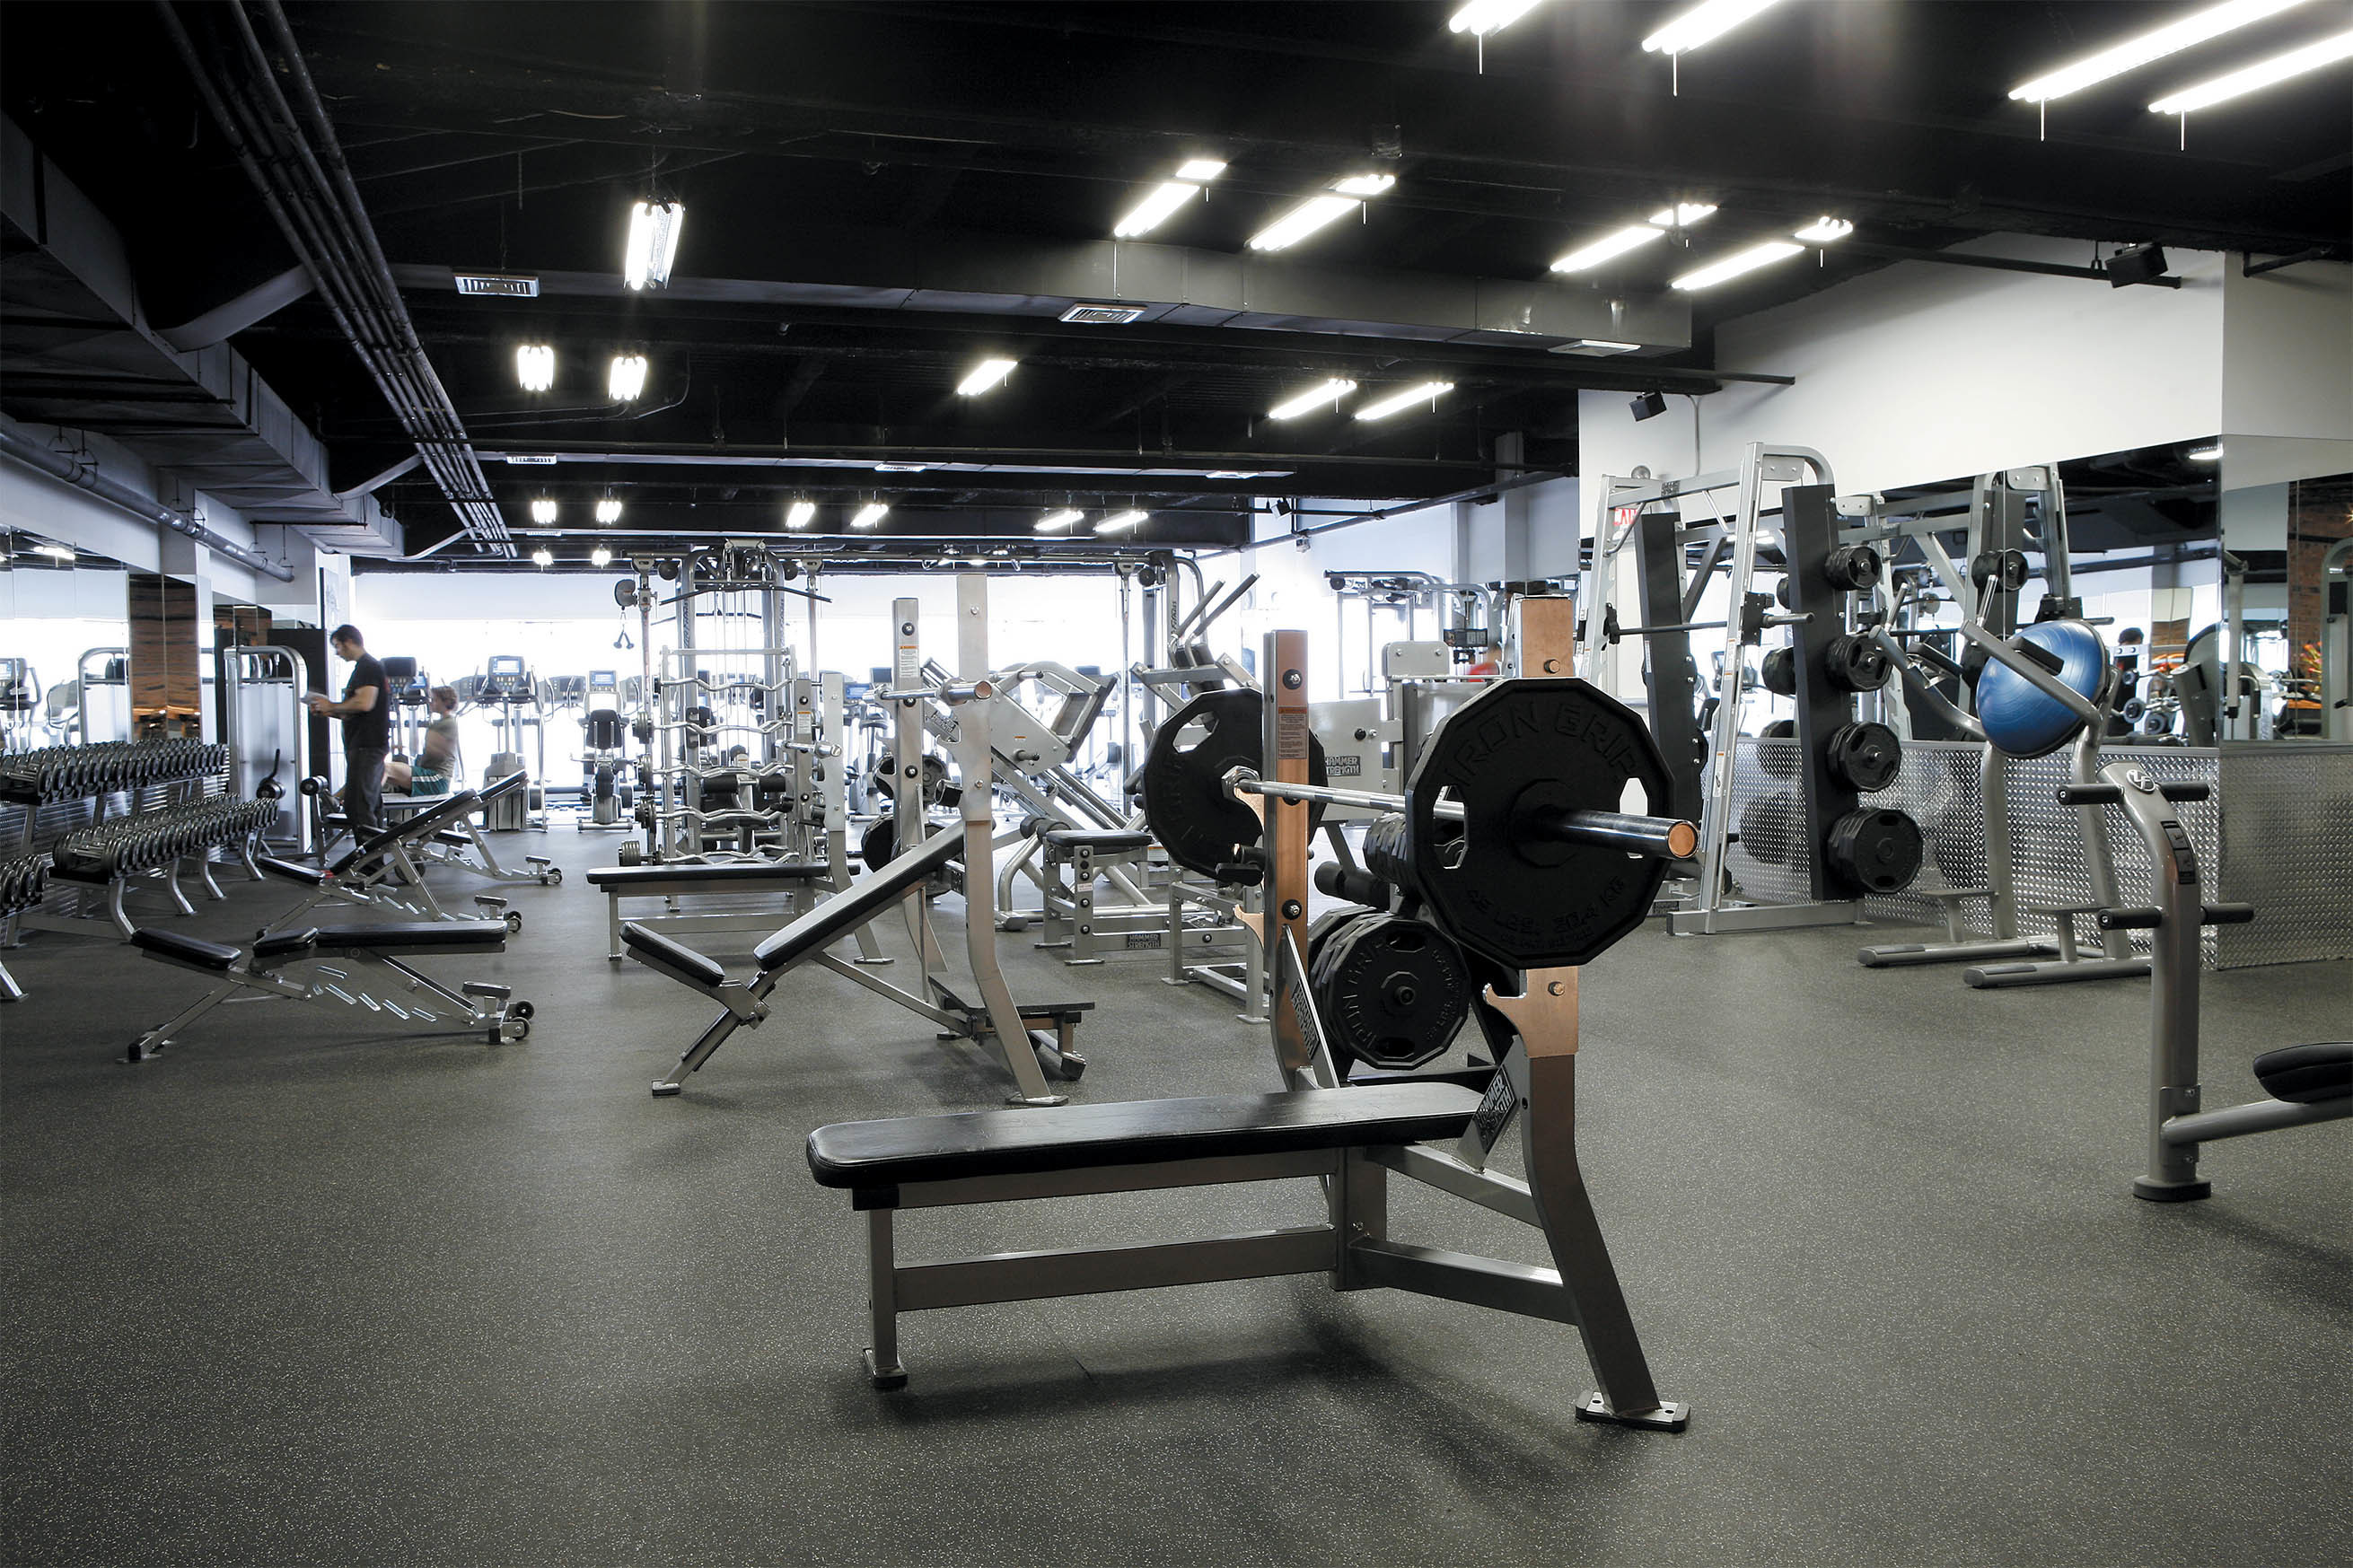 Best chicago gyms for getting in shape